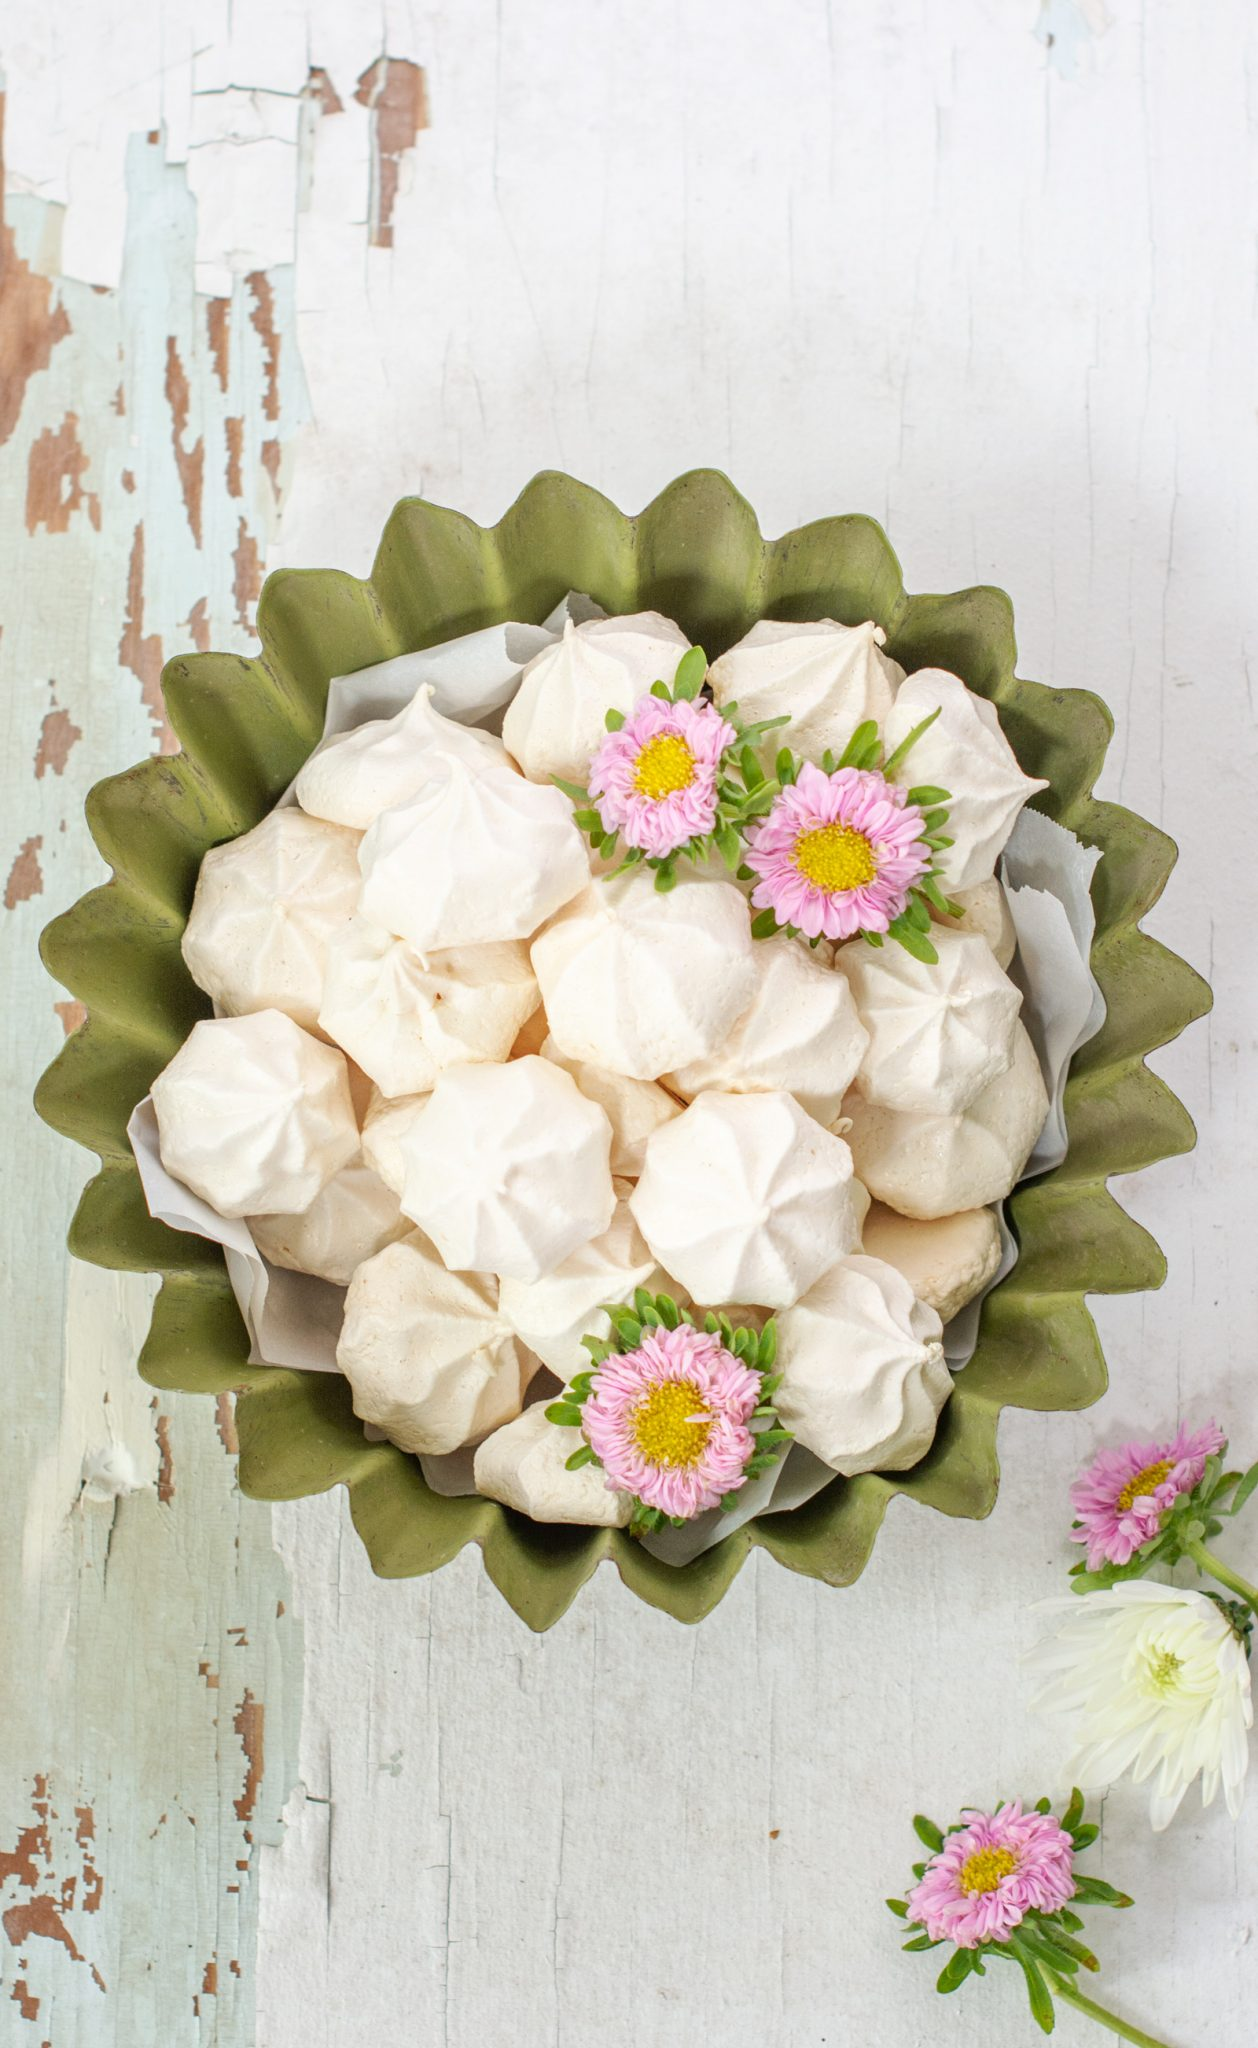 Overhead shot of crunchy meringue cookies in green bowl on white background